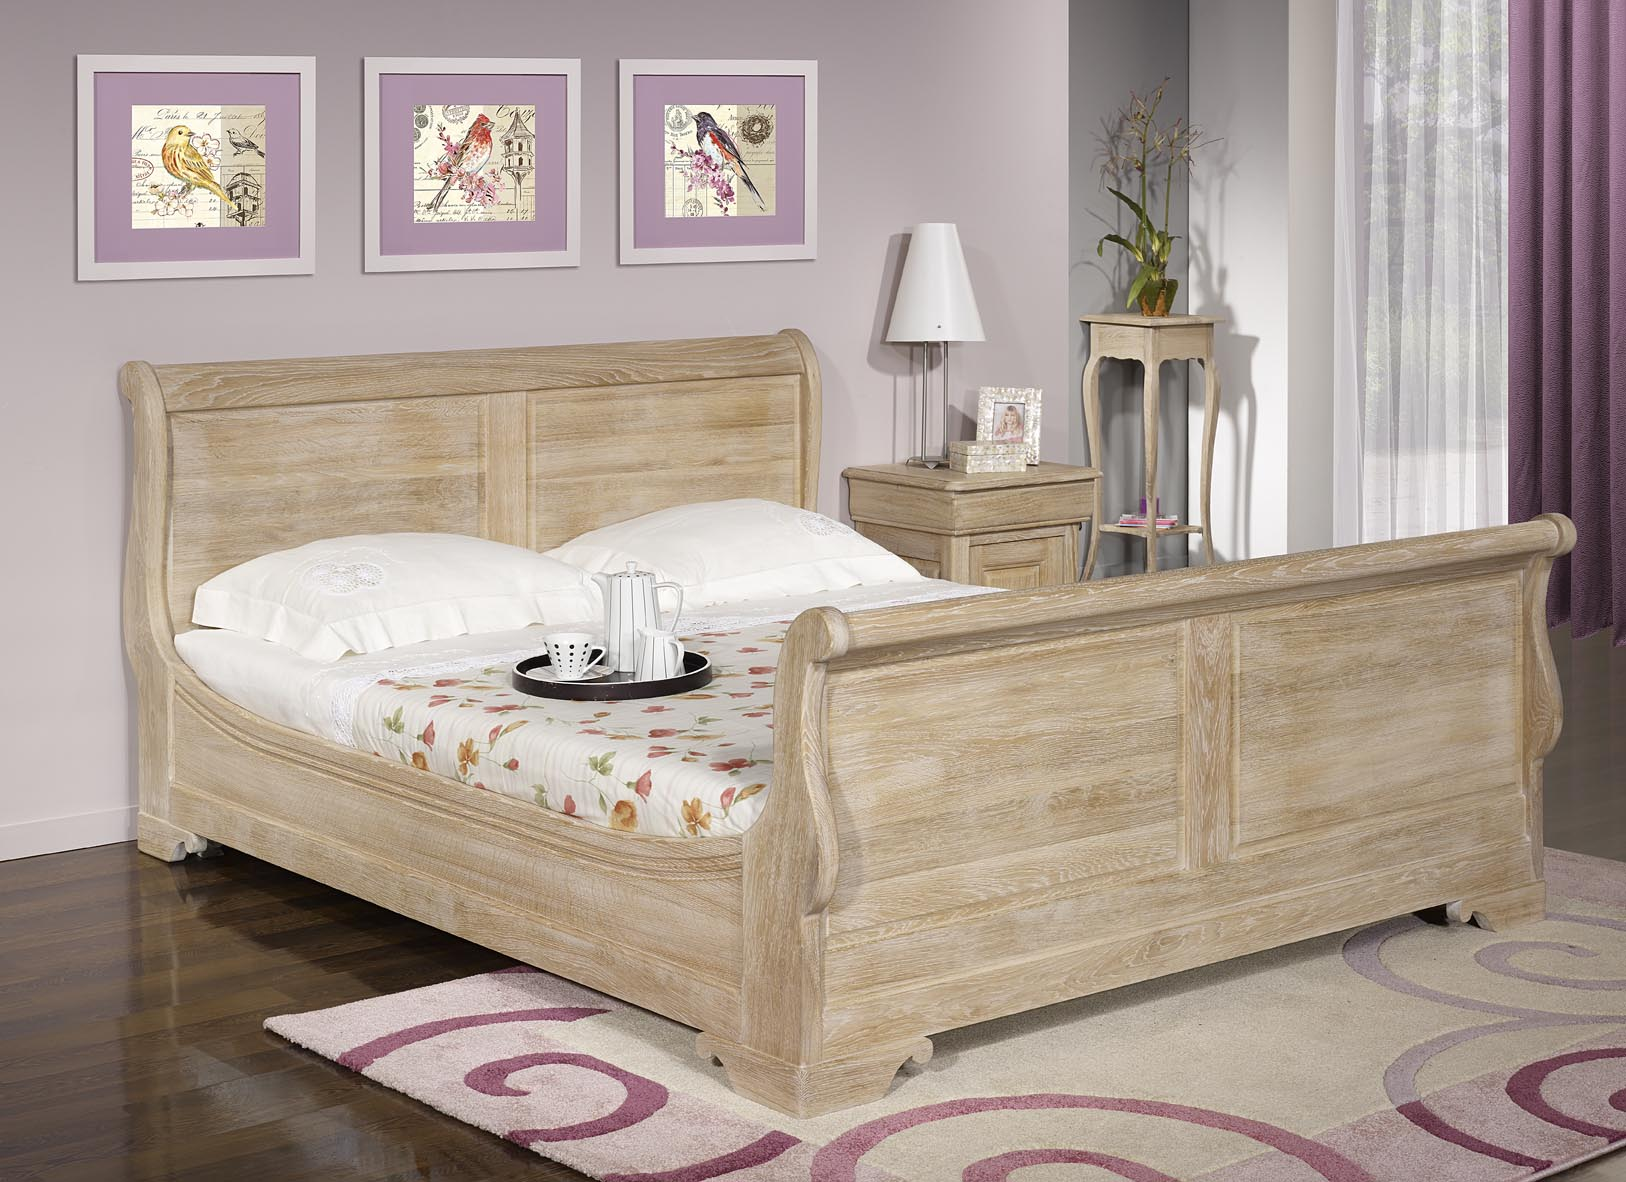 lit bateau en ch ne massif 160 200 de style louis philippe. Black Bedroom Furniture Sets. Home Design Ideas